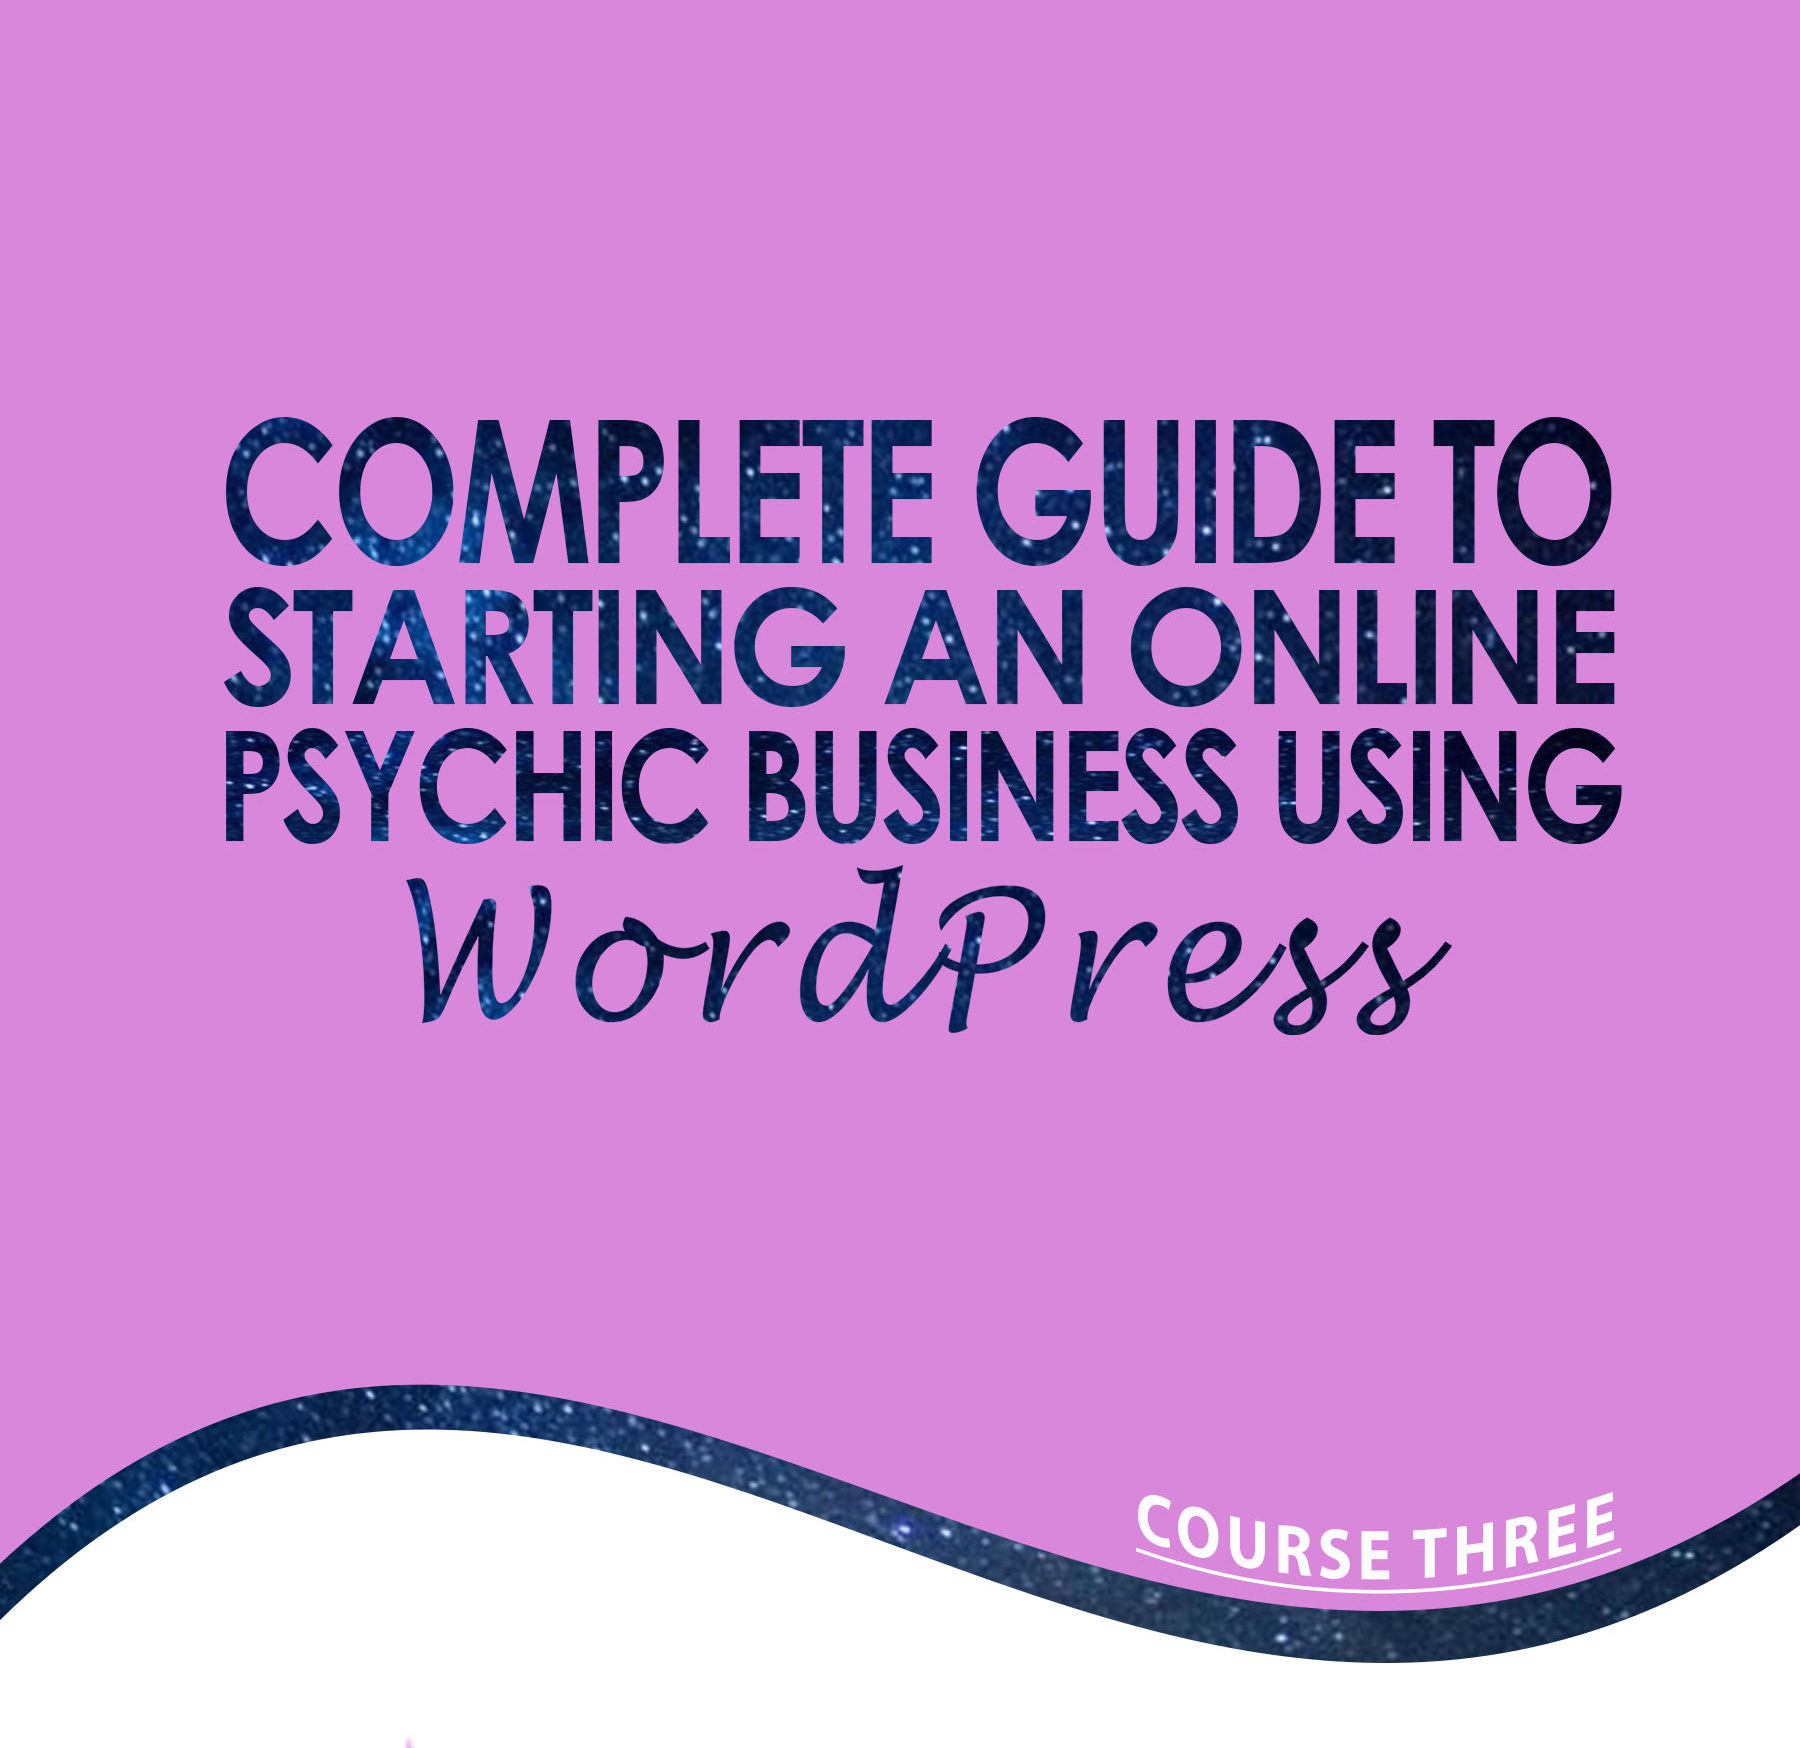 Narrowing Down The Best Name For Your Psychic Business